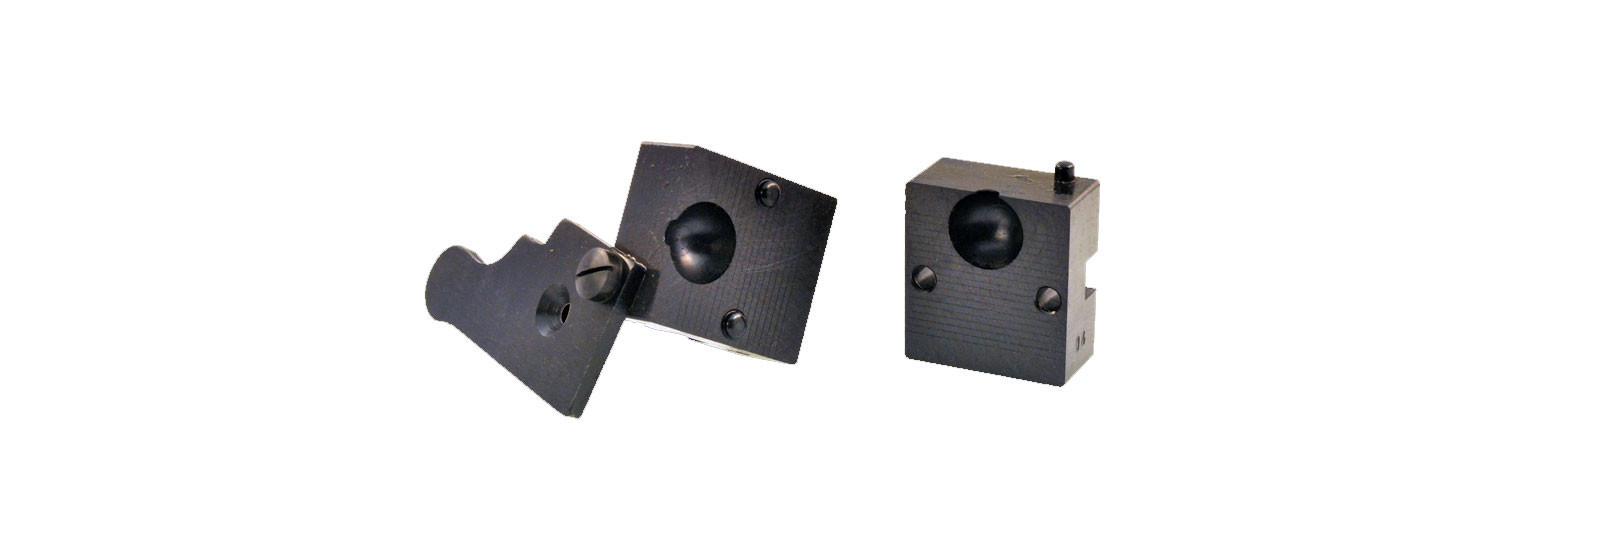 Bullet mould block with 1 cavity - round ball